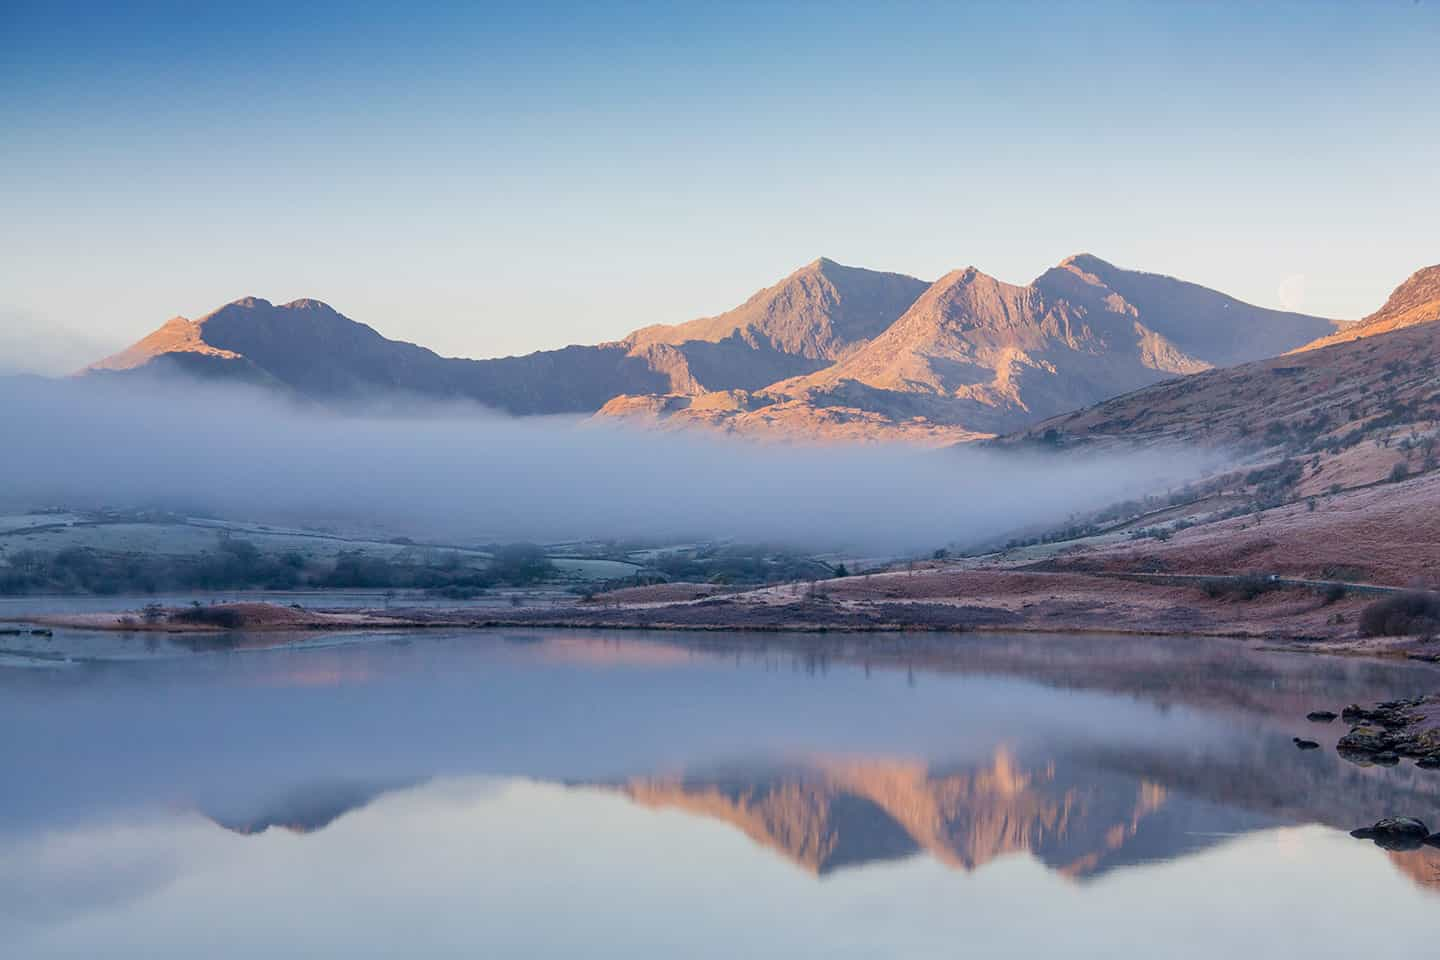 Image of Mount Snowdon